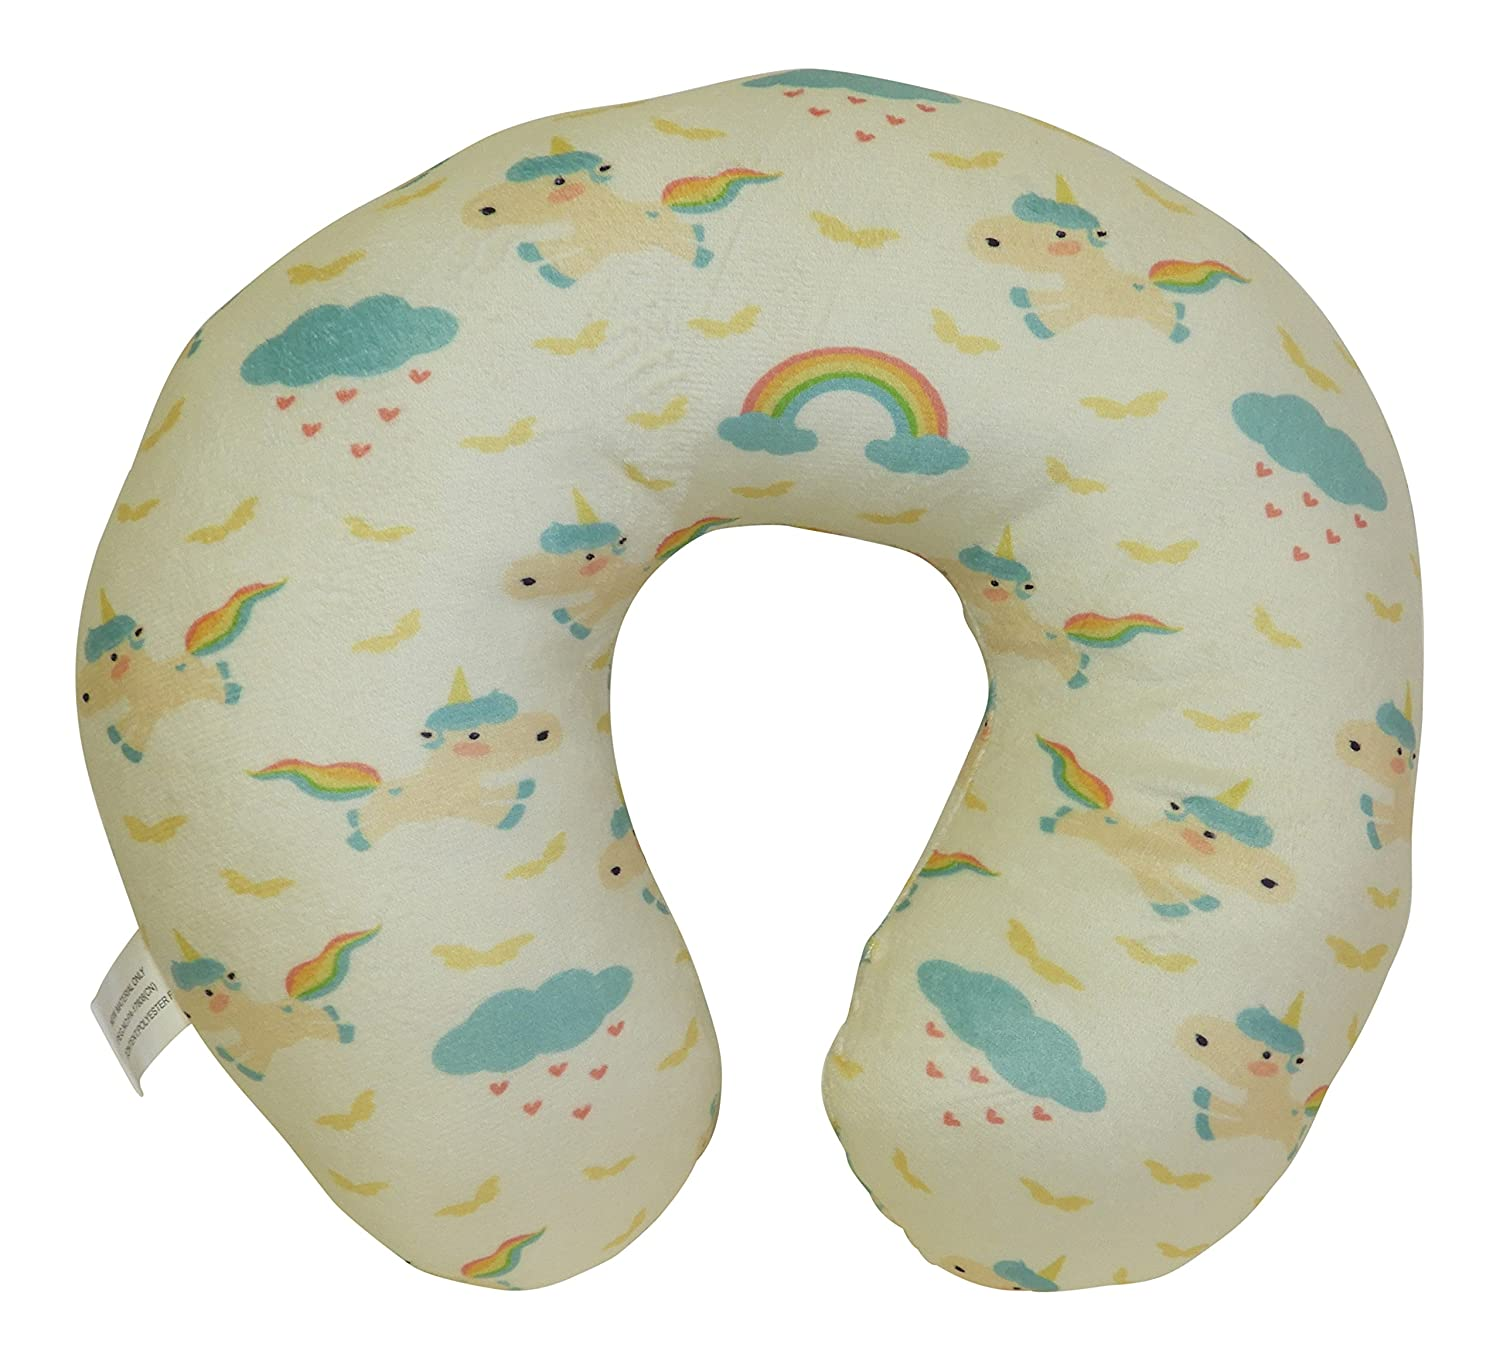 DINY Home & Style Unicorn Memory Foam Travel Neck Pillow Medium For Kids Teens and Petites (Yellow) Dependable Industries inc